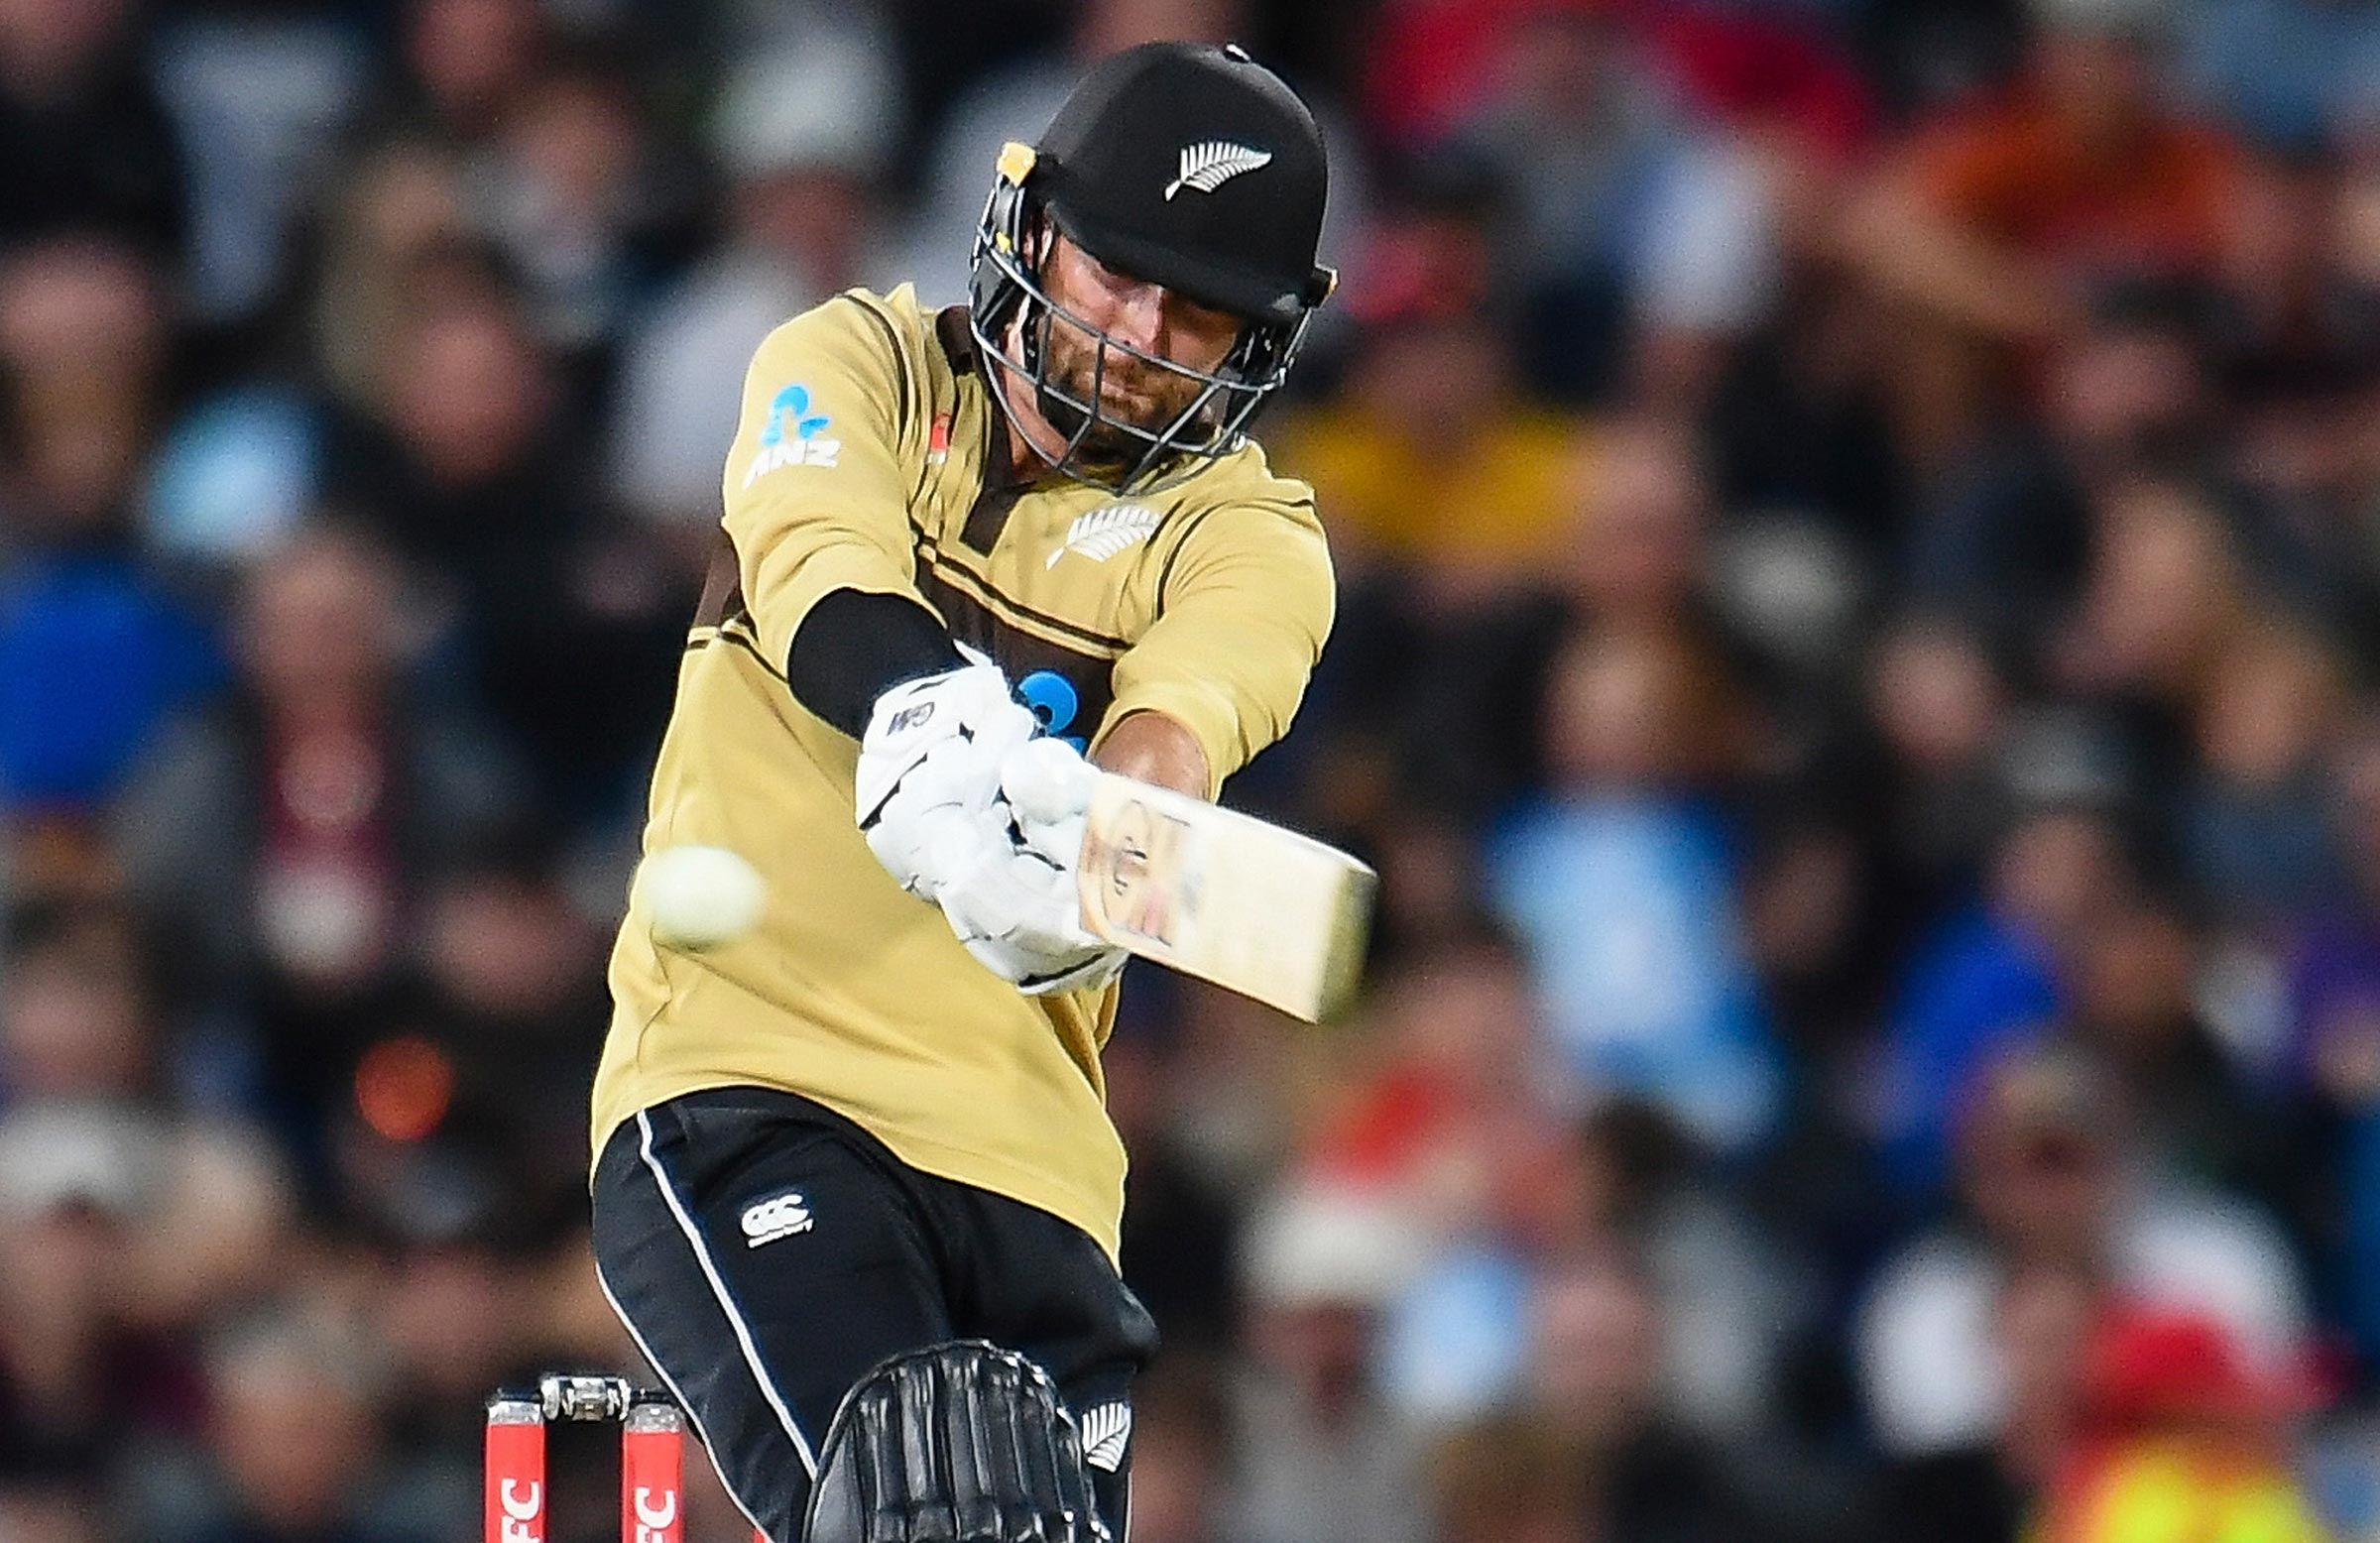 Conway fell just short of a deserved century in Christchurch // Getty